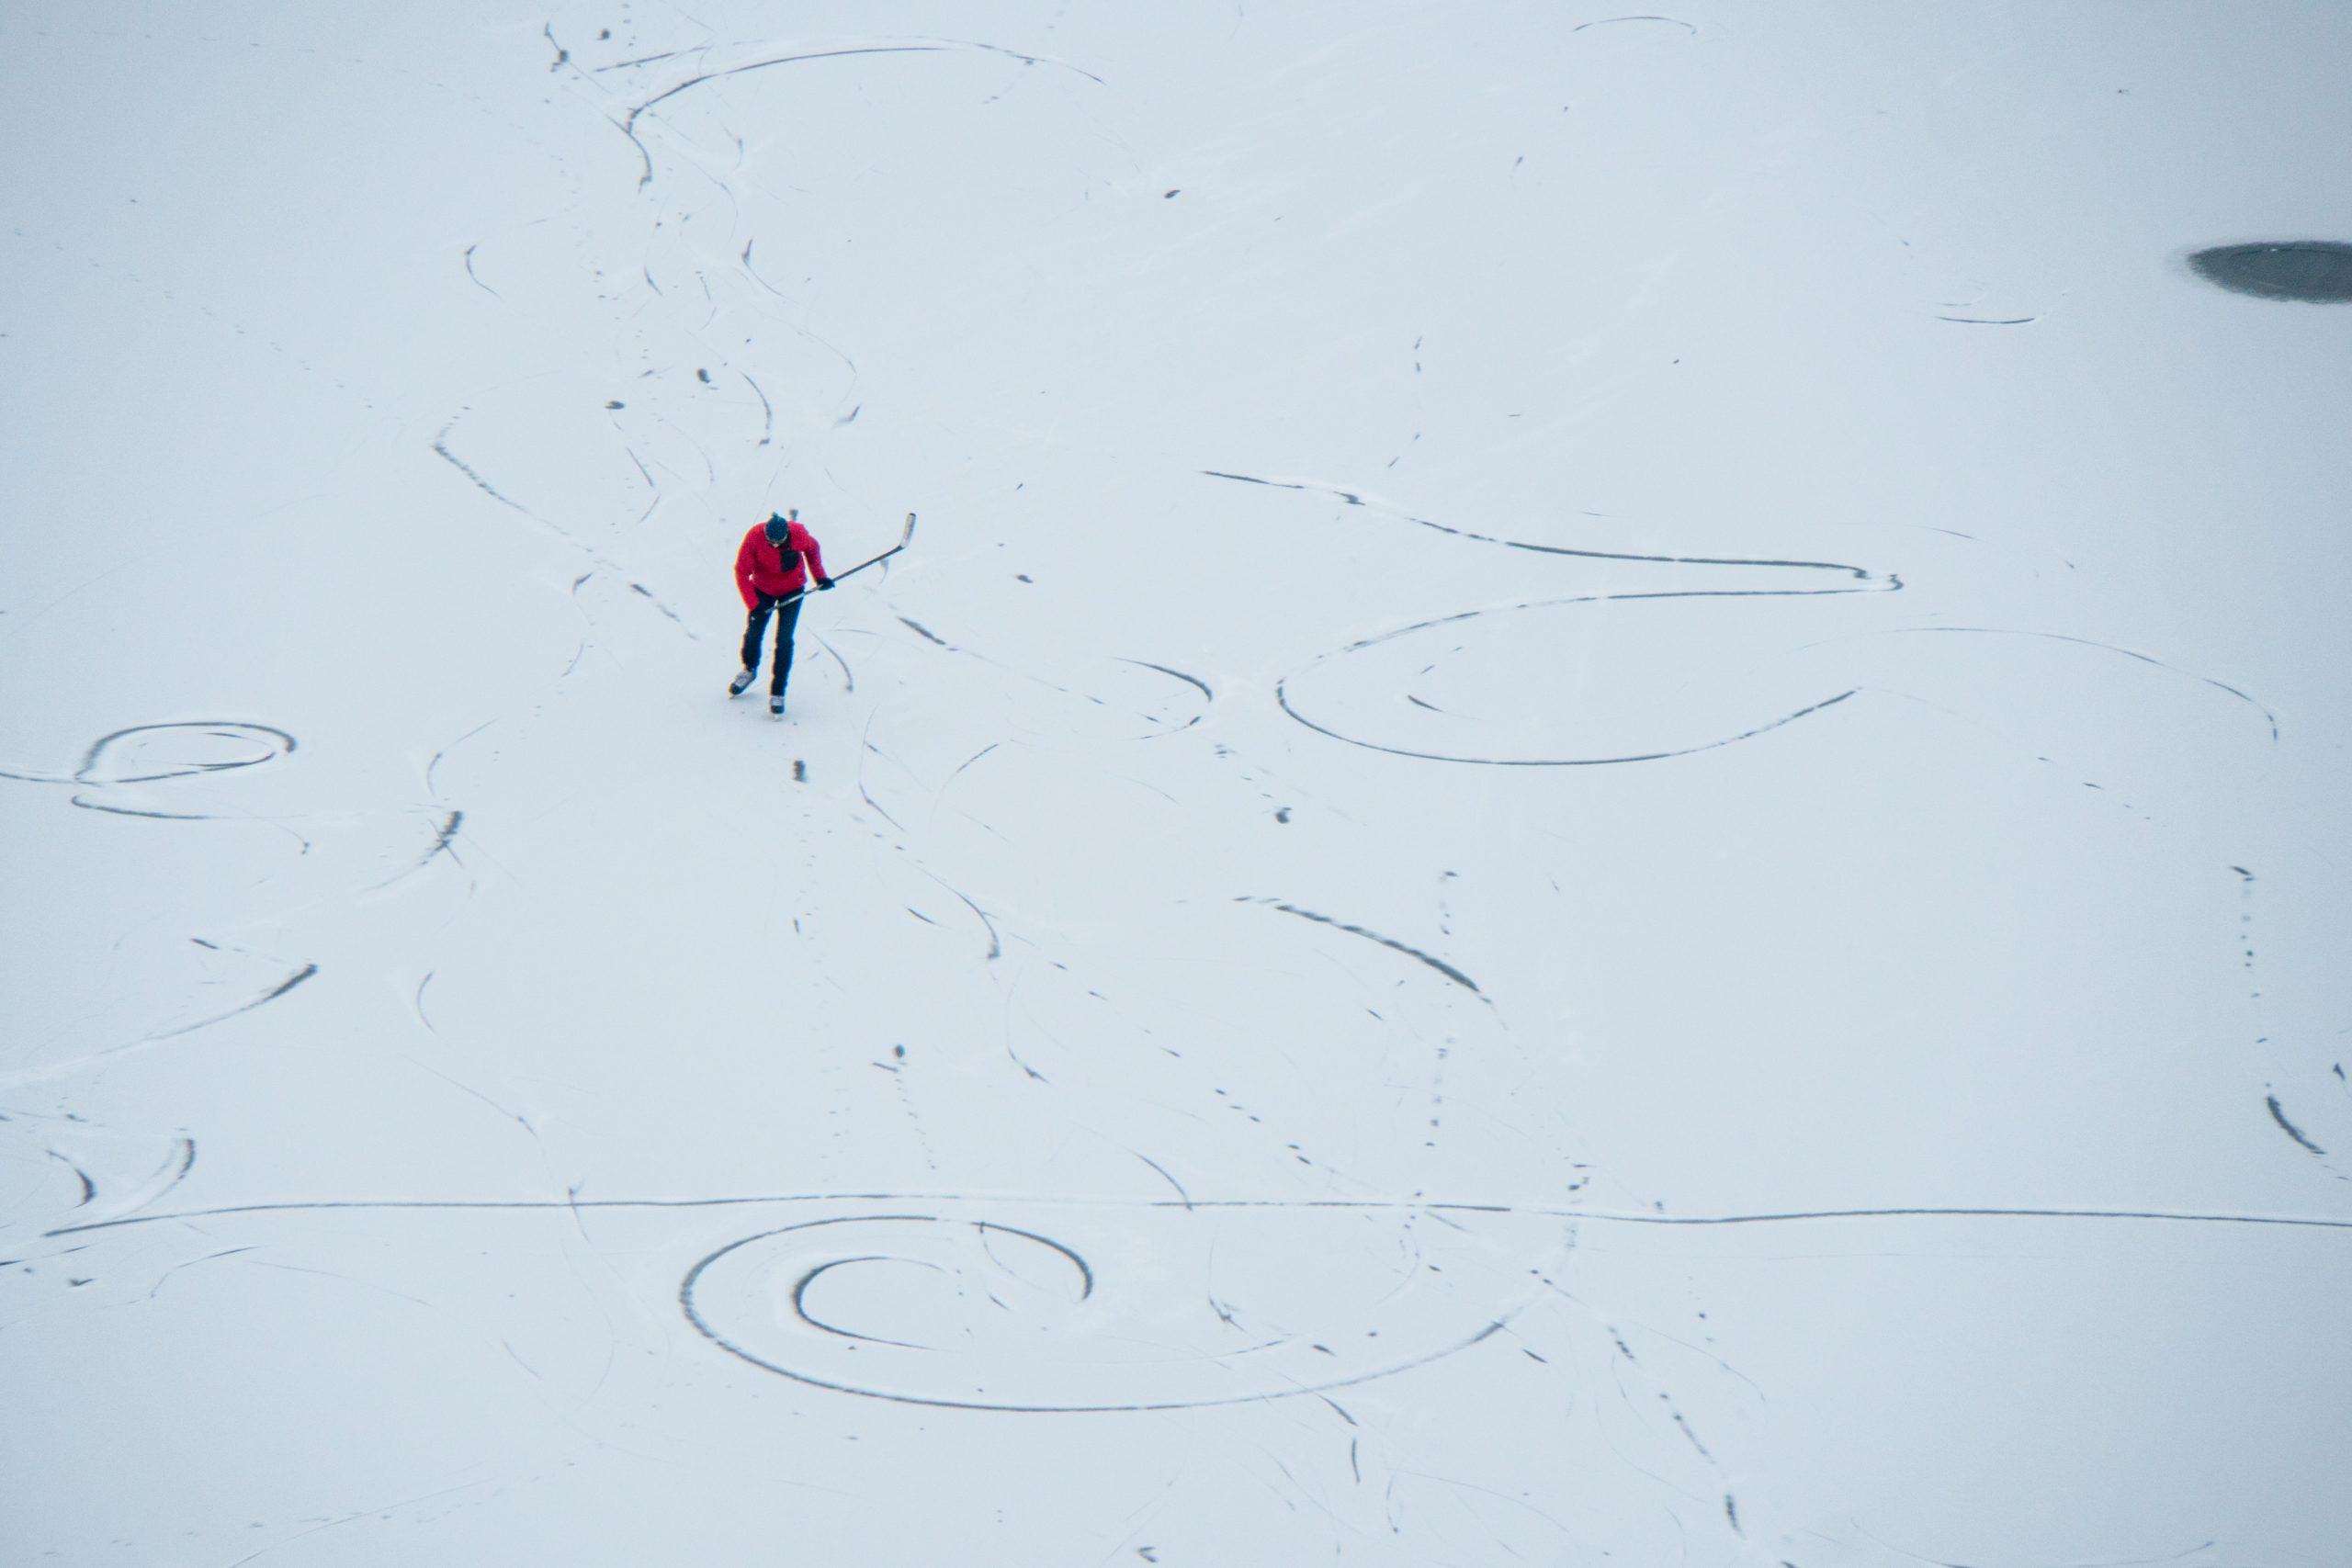 (2/2) Are these particle tracks or skate tracks? people, winter, lab life, snow Photo: Marguerite Tonjes